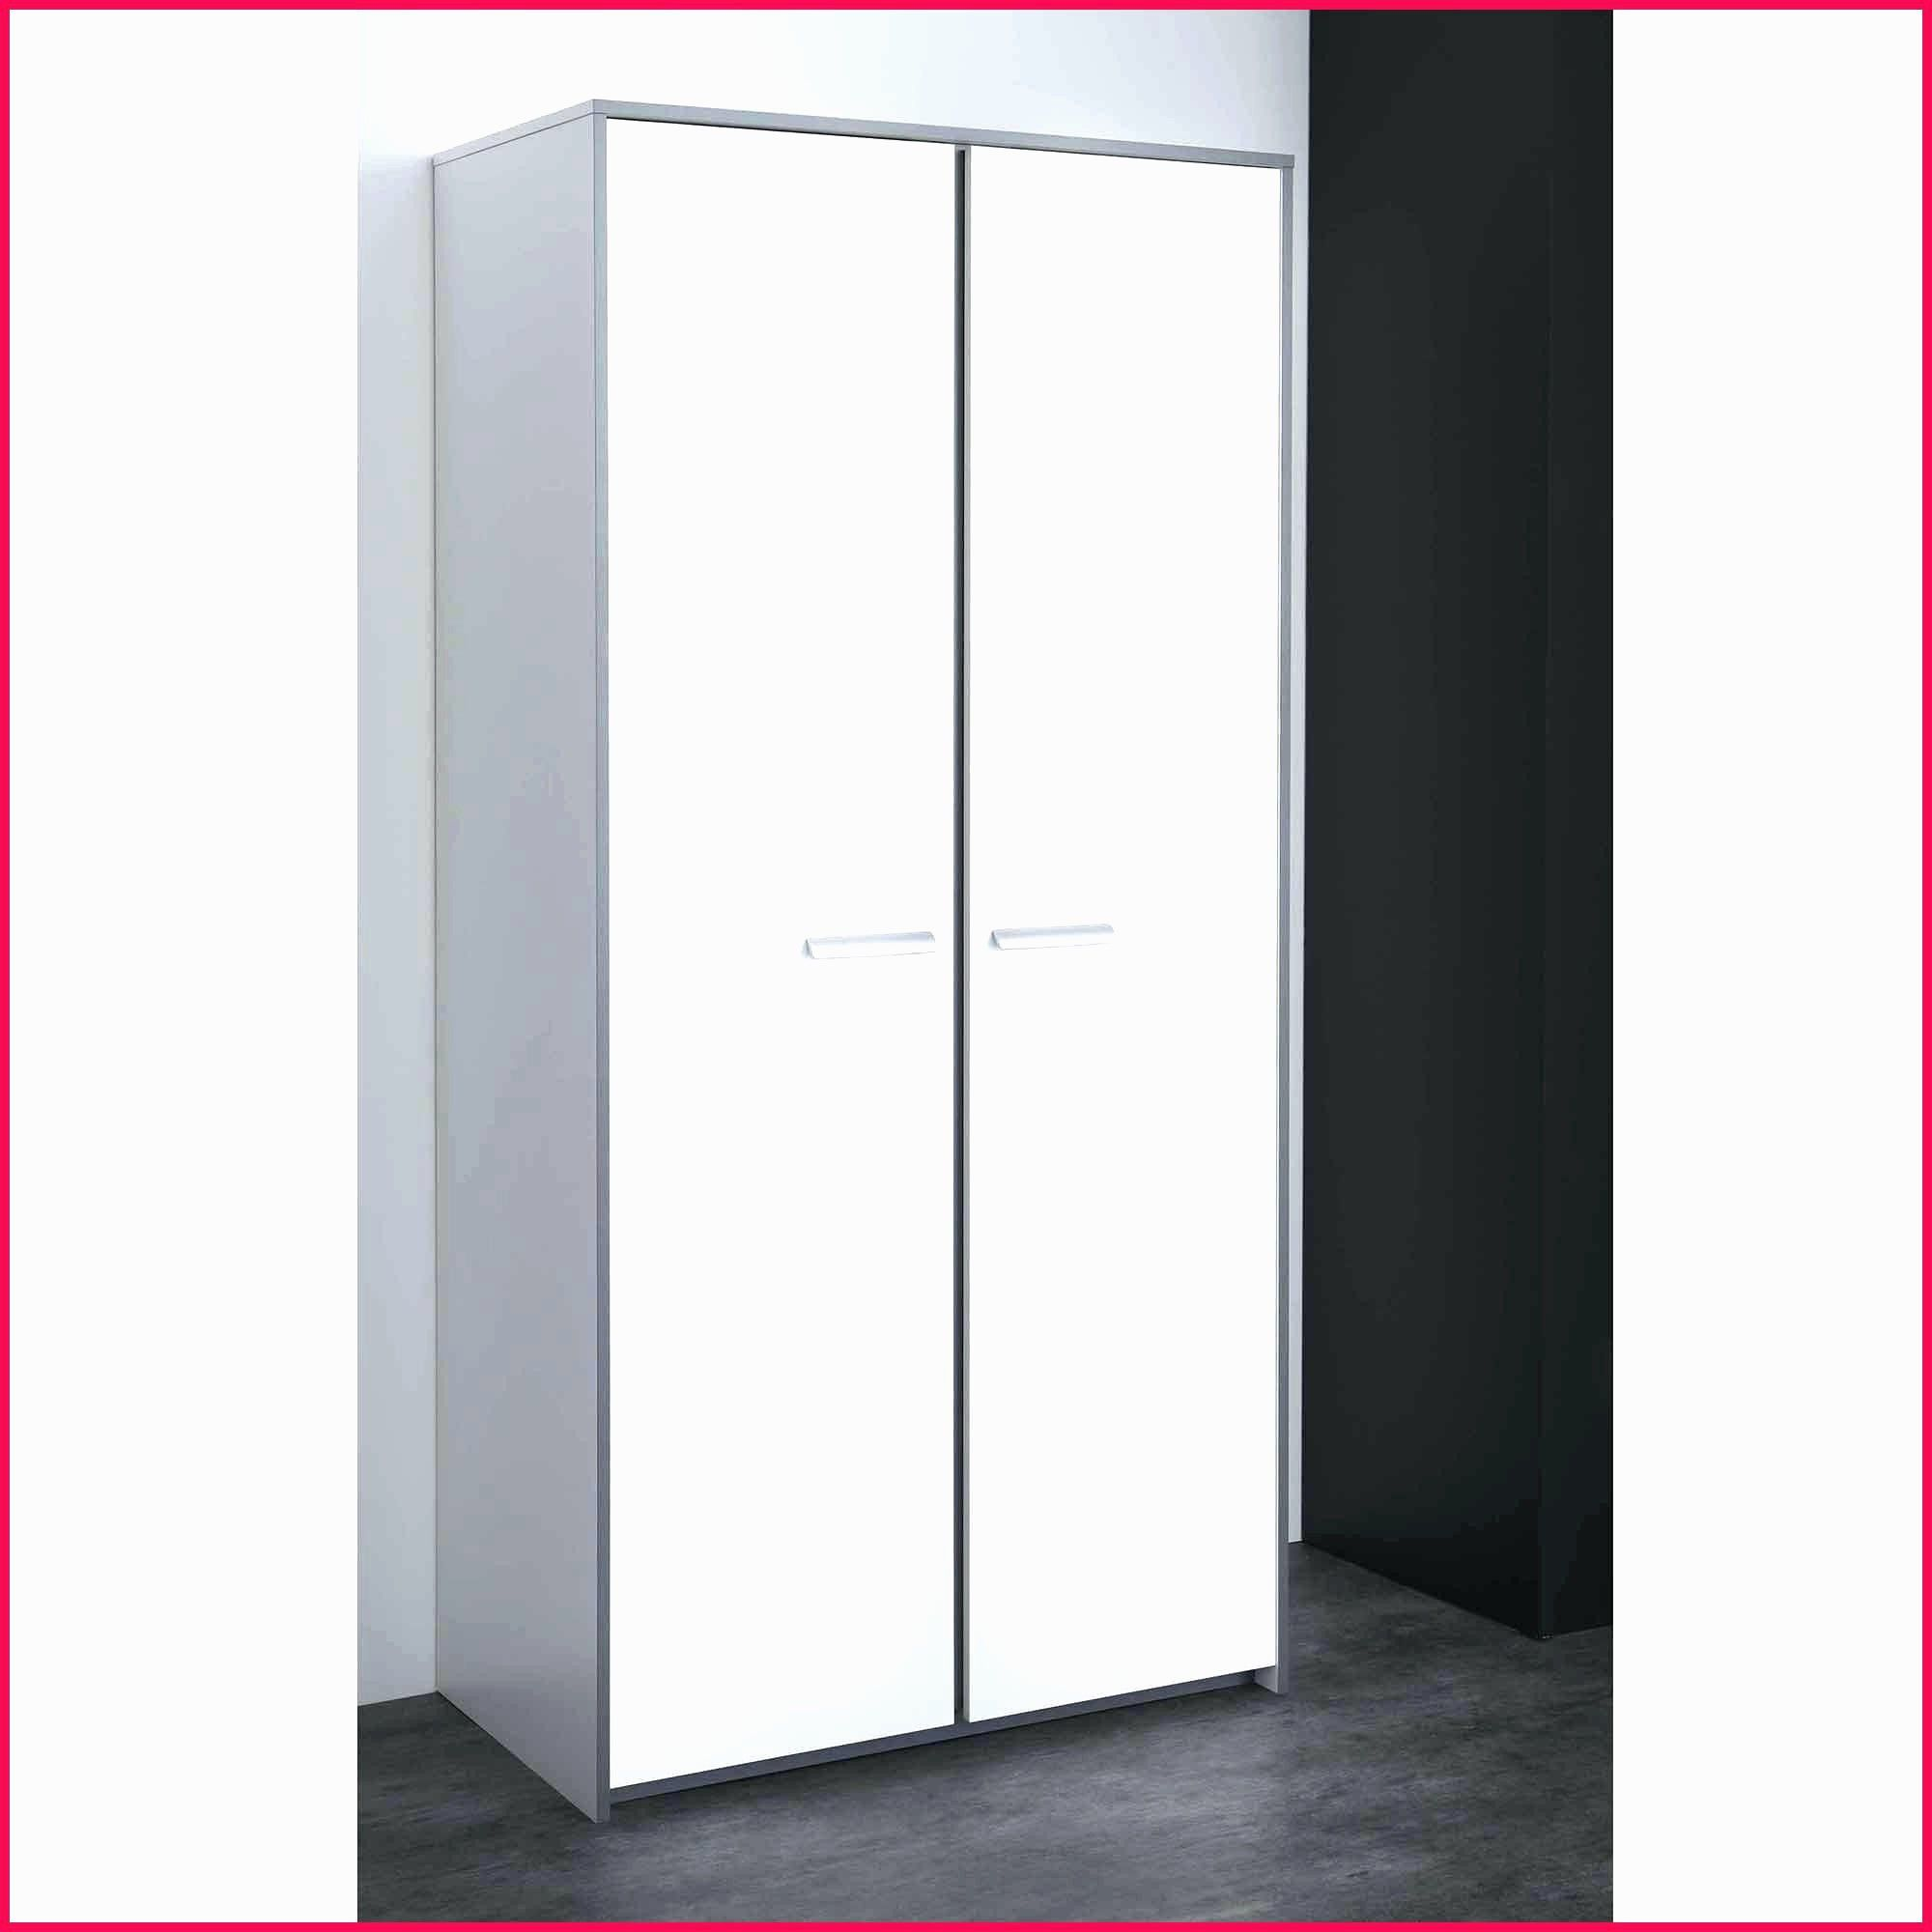 Armoire Penderie 1 Porte Armoire Penderie 1 Porte Armoire 4 Portes Penderie Achat Vente Pas Cher Ou Trouver L Of With Images Tall Cabinet Storage Armoire Storage Cabinet